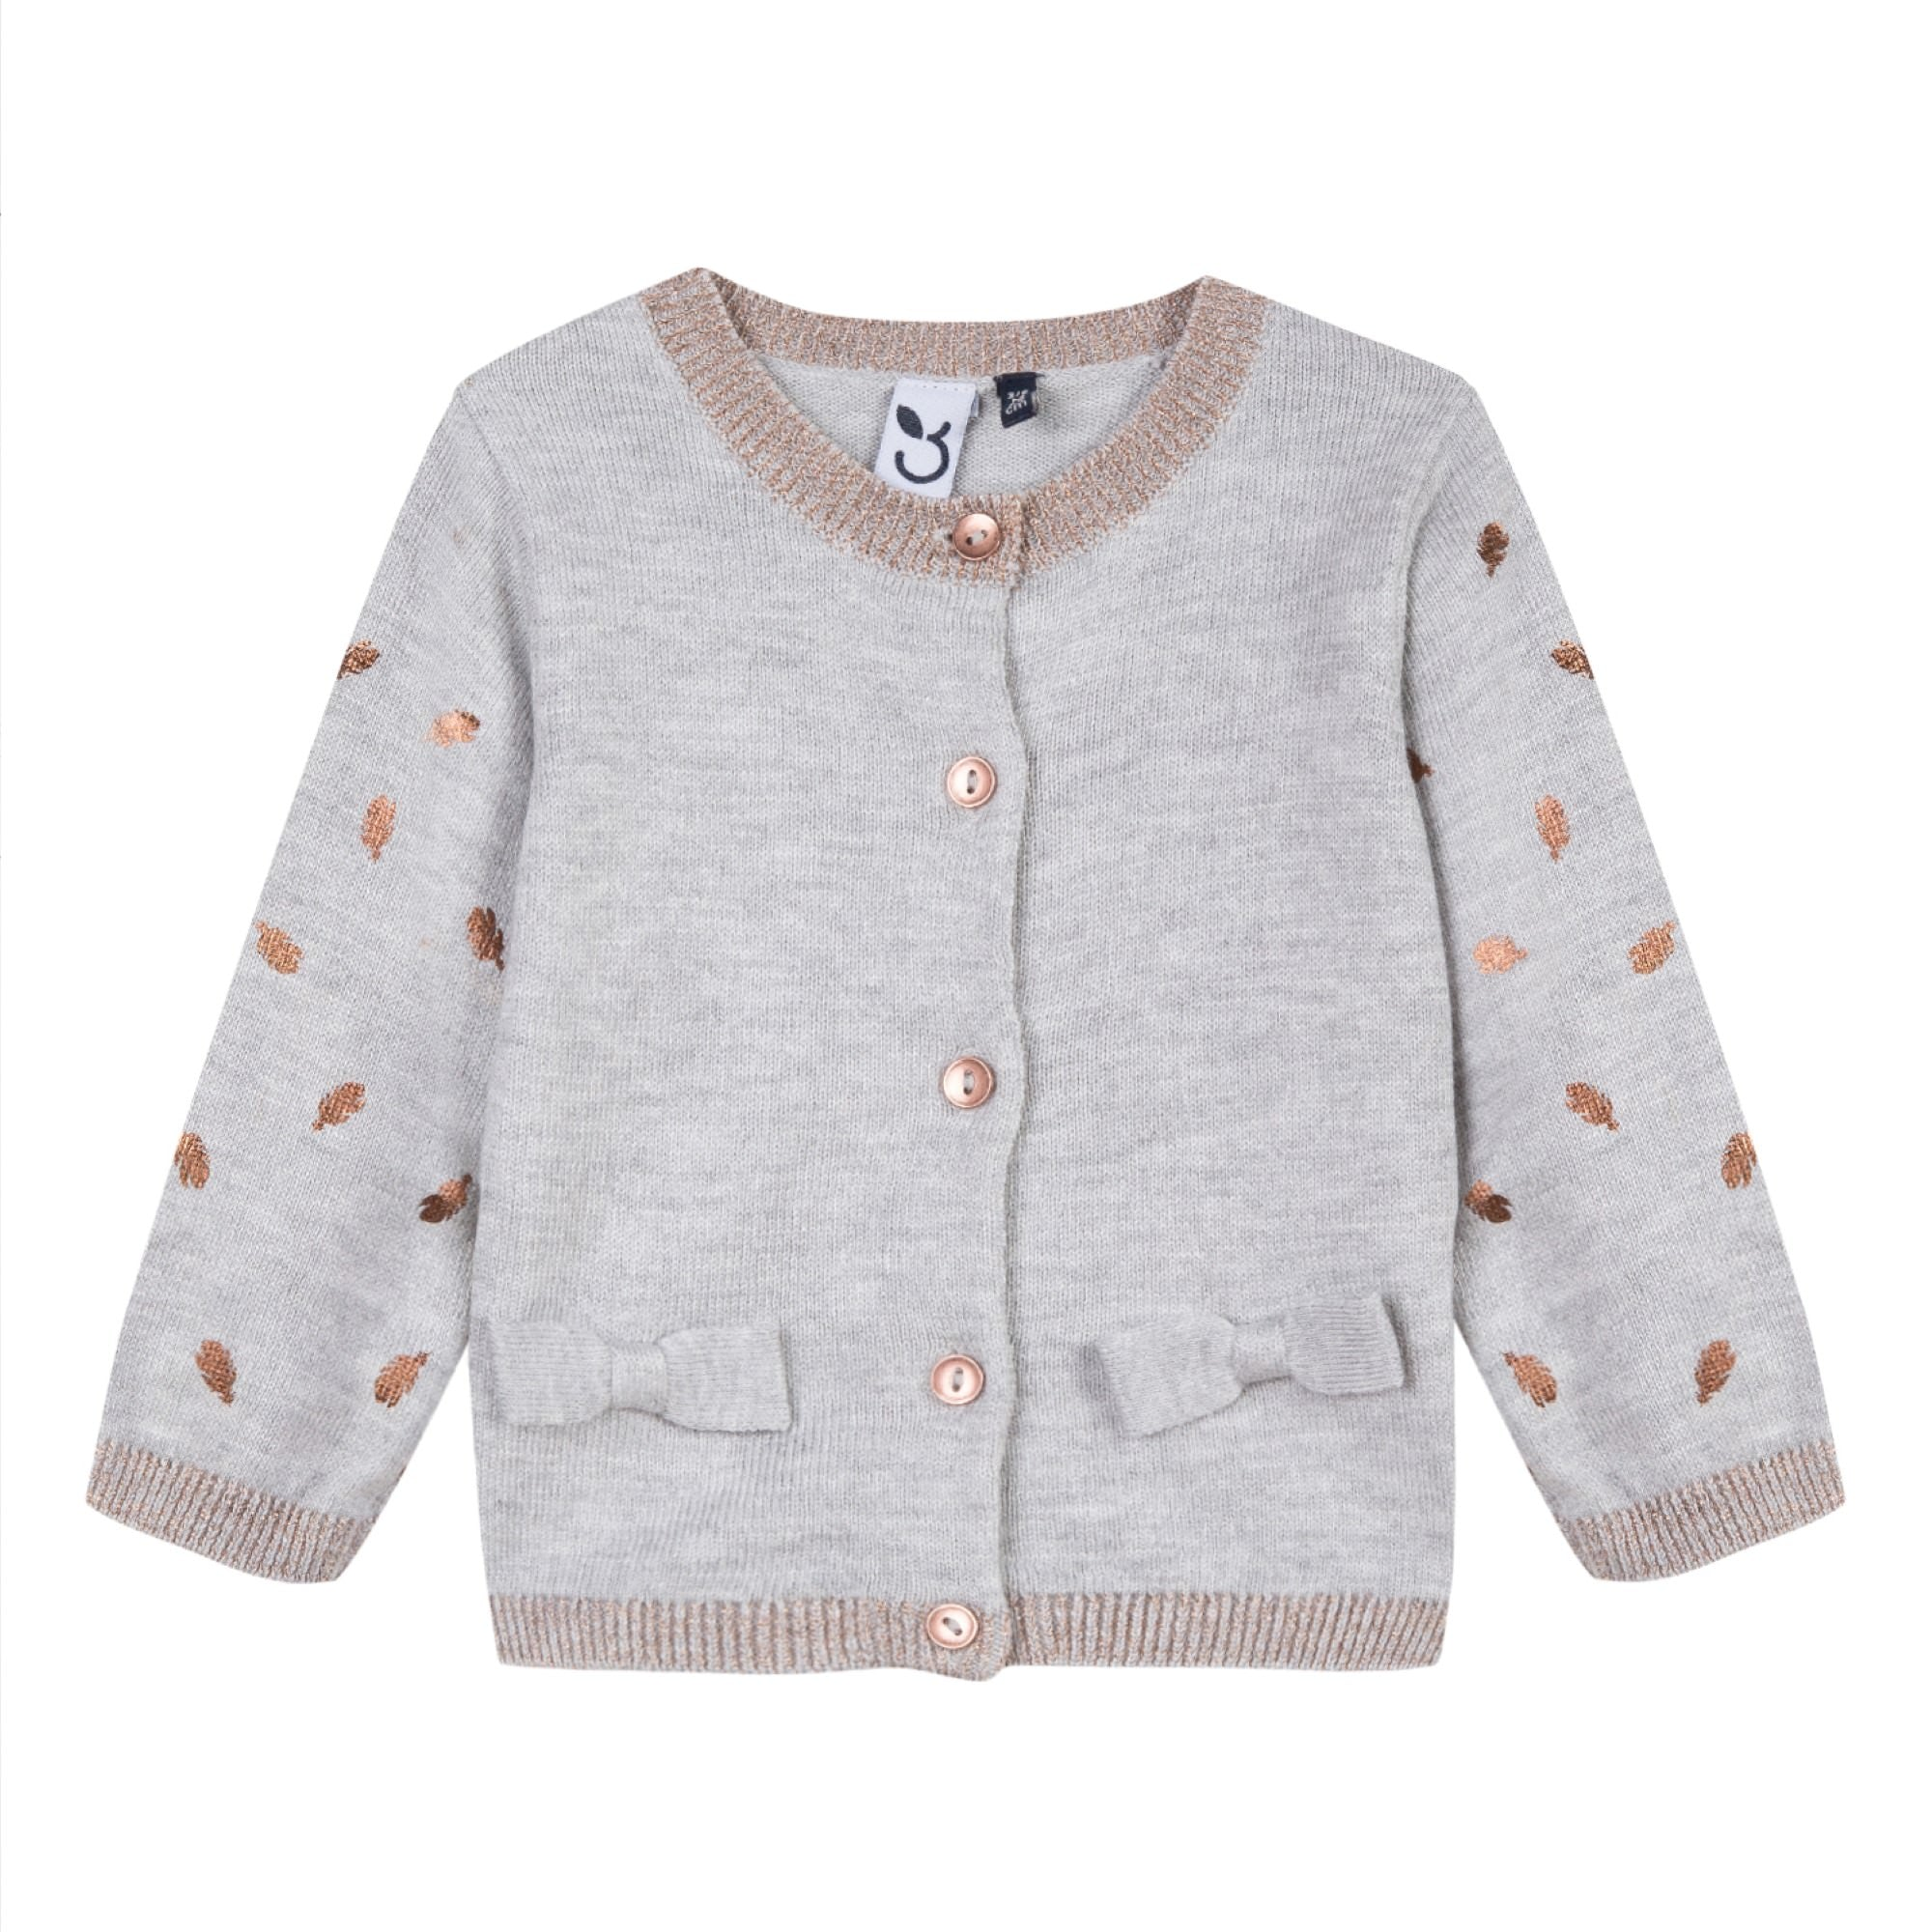 b3adb869c Baby   Toddler Girls Beige Knit Cardigan With Bows – House of Sofella